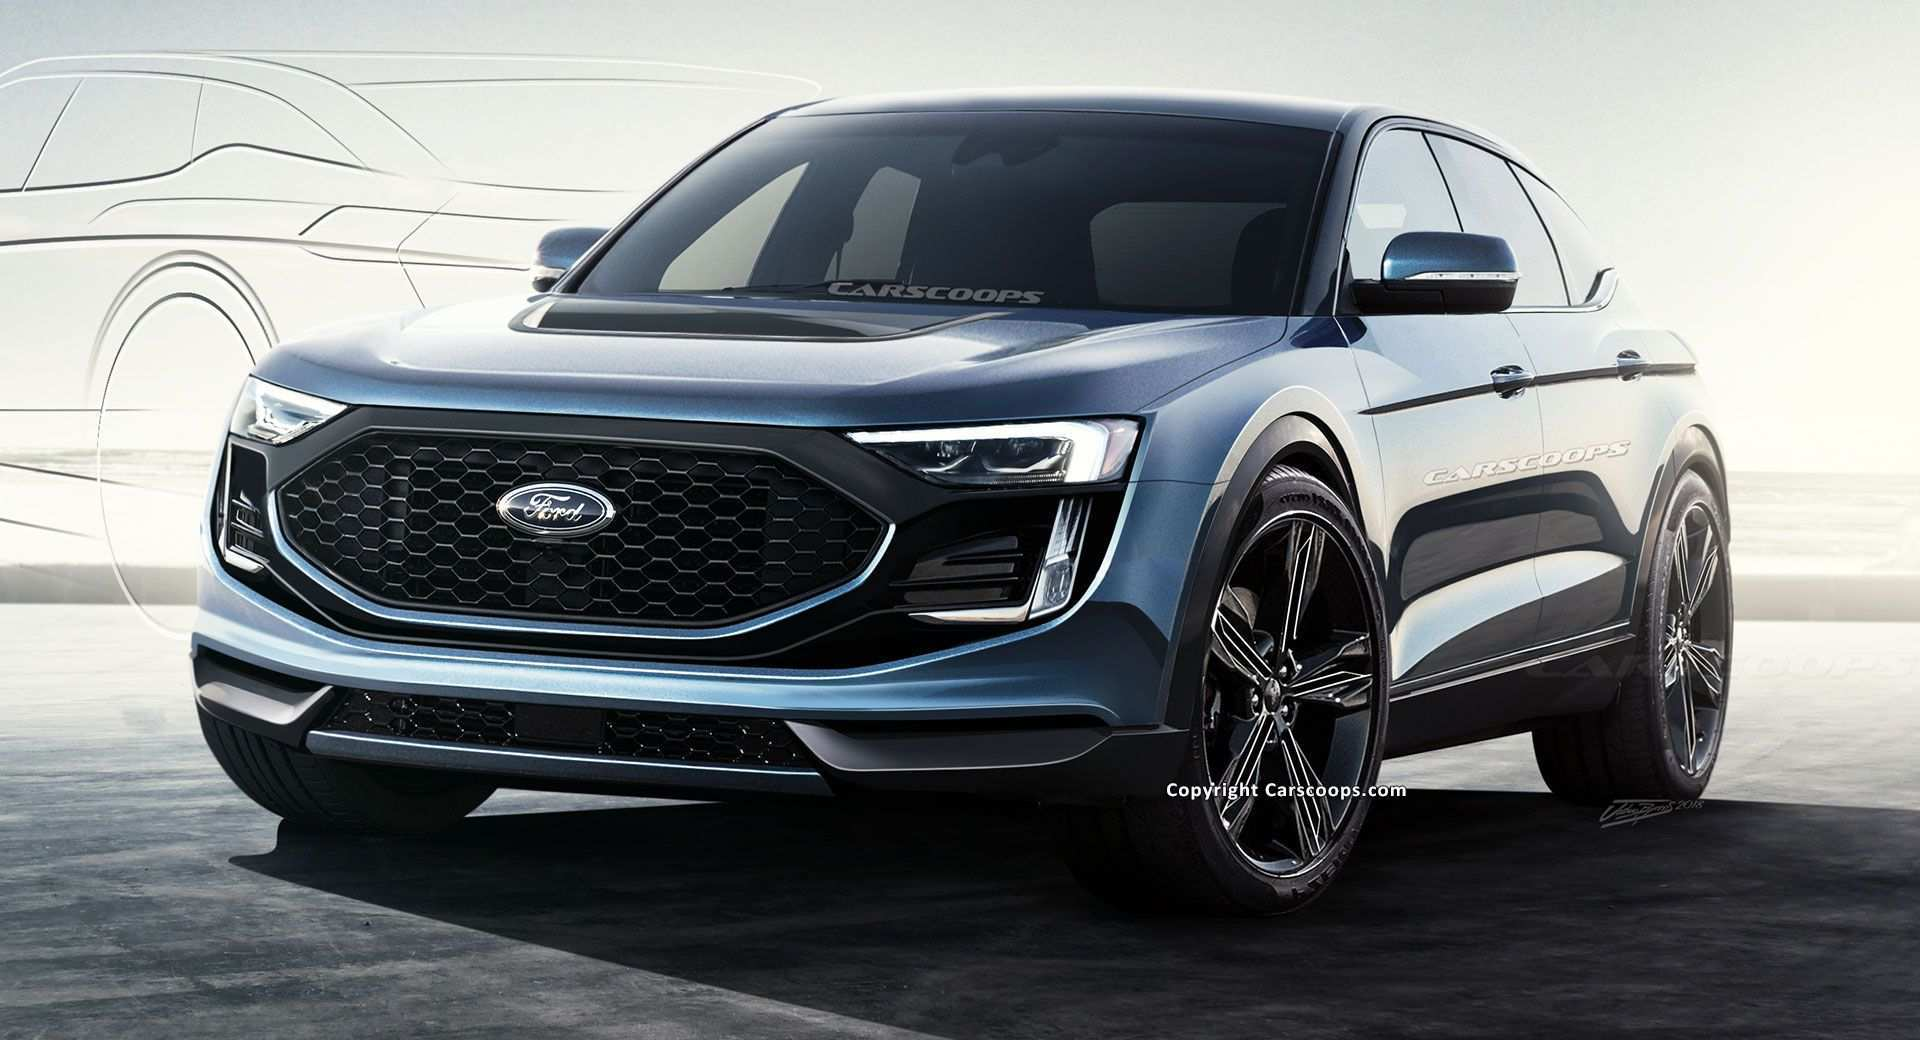 41 New Ford Concept Cars 2020 Specs